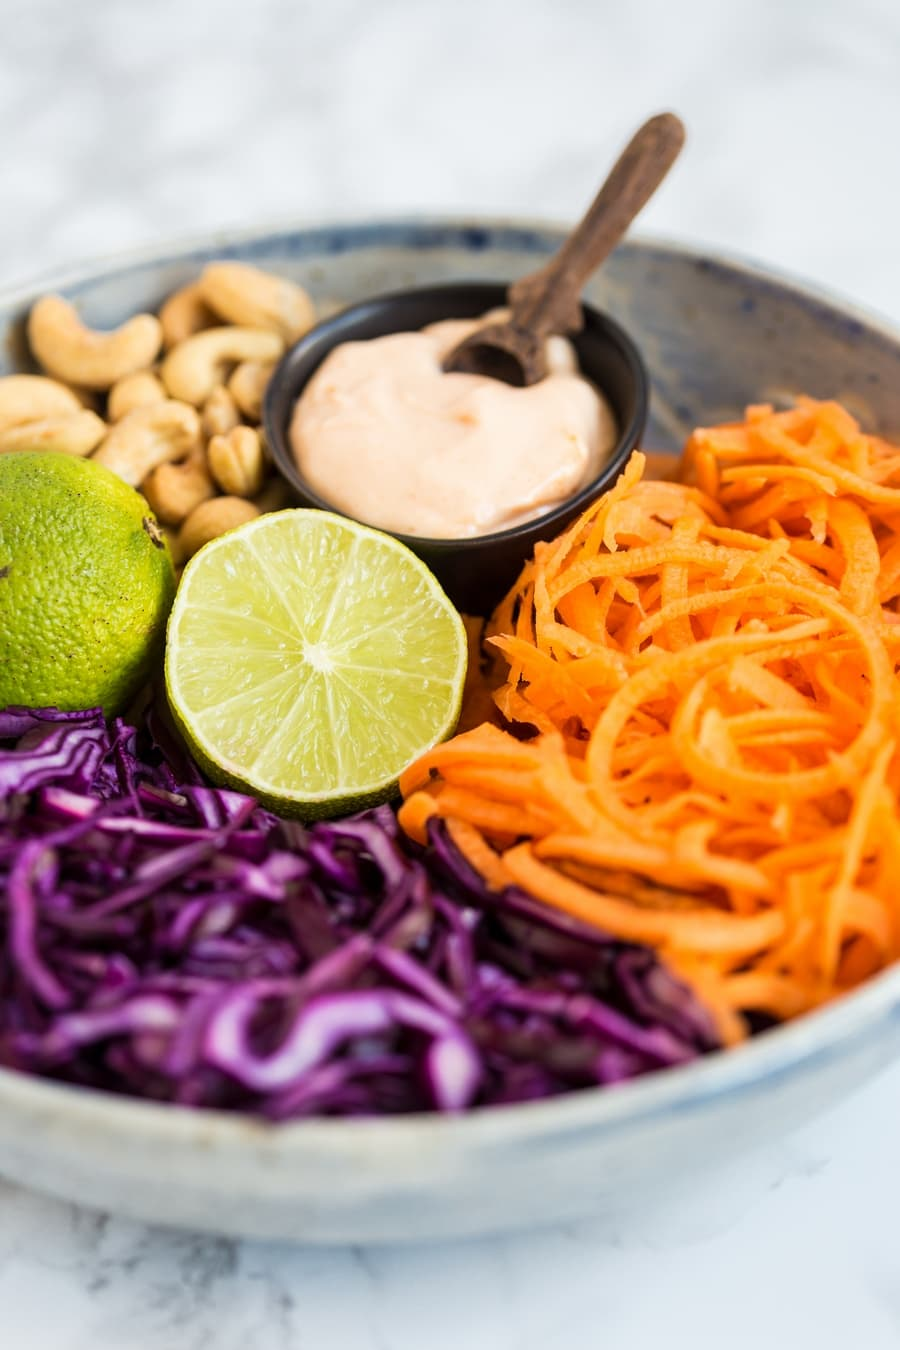 Thai red cabbage slaw ingredients